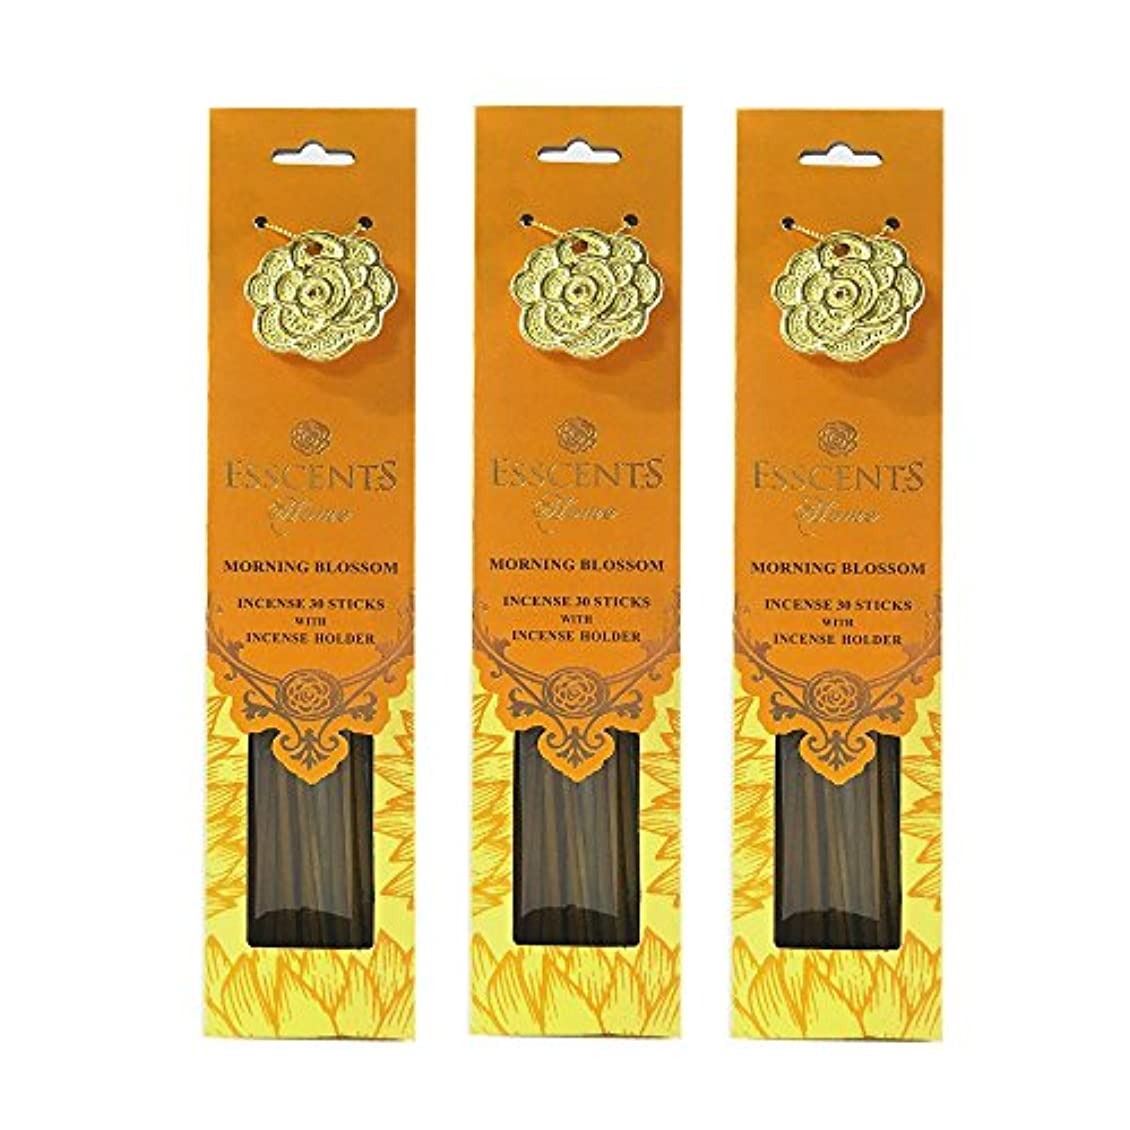 Esscentsホーム90 SticksプレミアムIncense with 3メタルIncense Holders – Morning Blossom